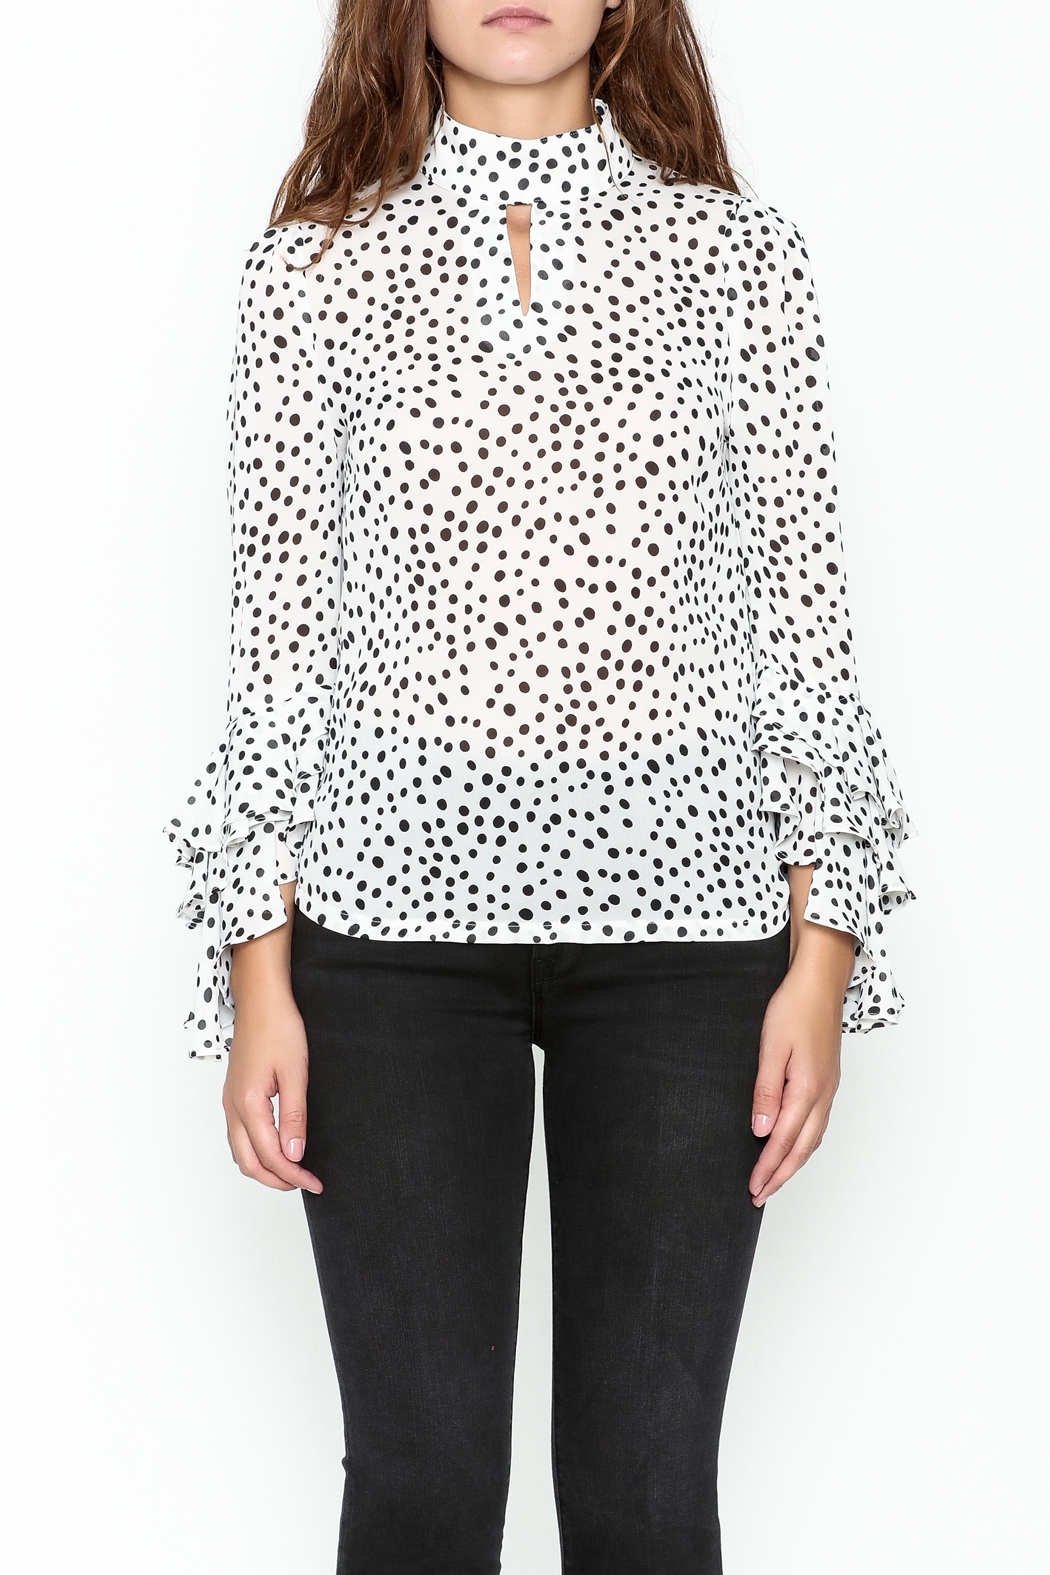 Pink Penguin Polka Dot Blouse - Front Full Image